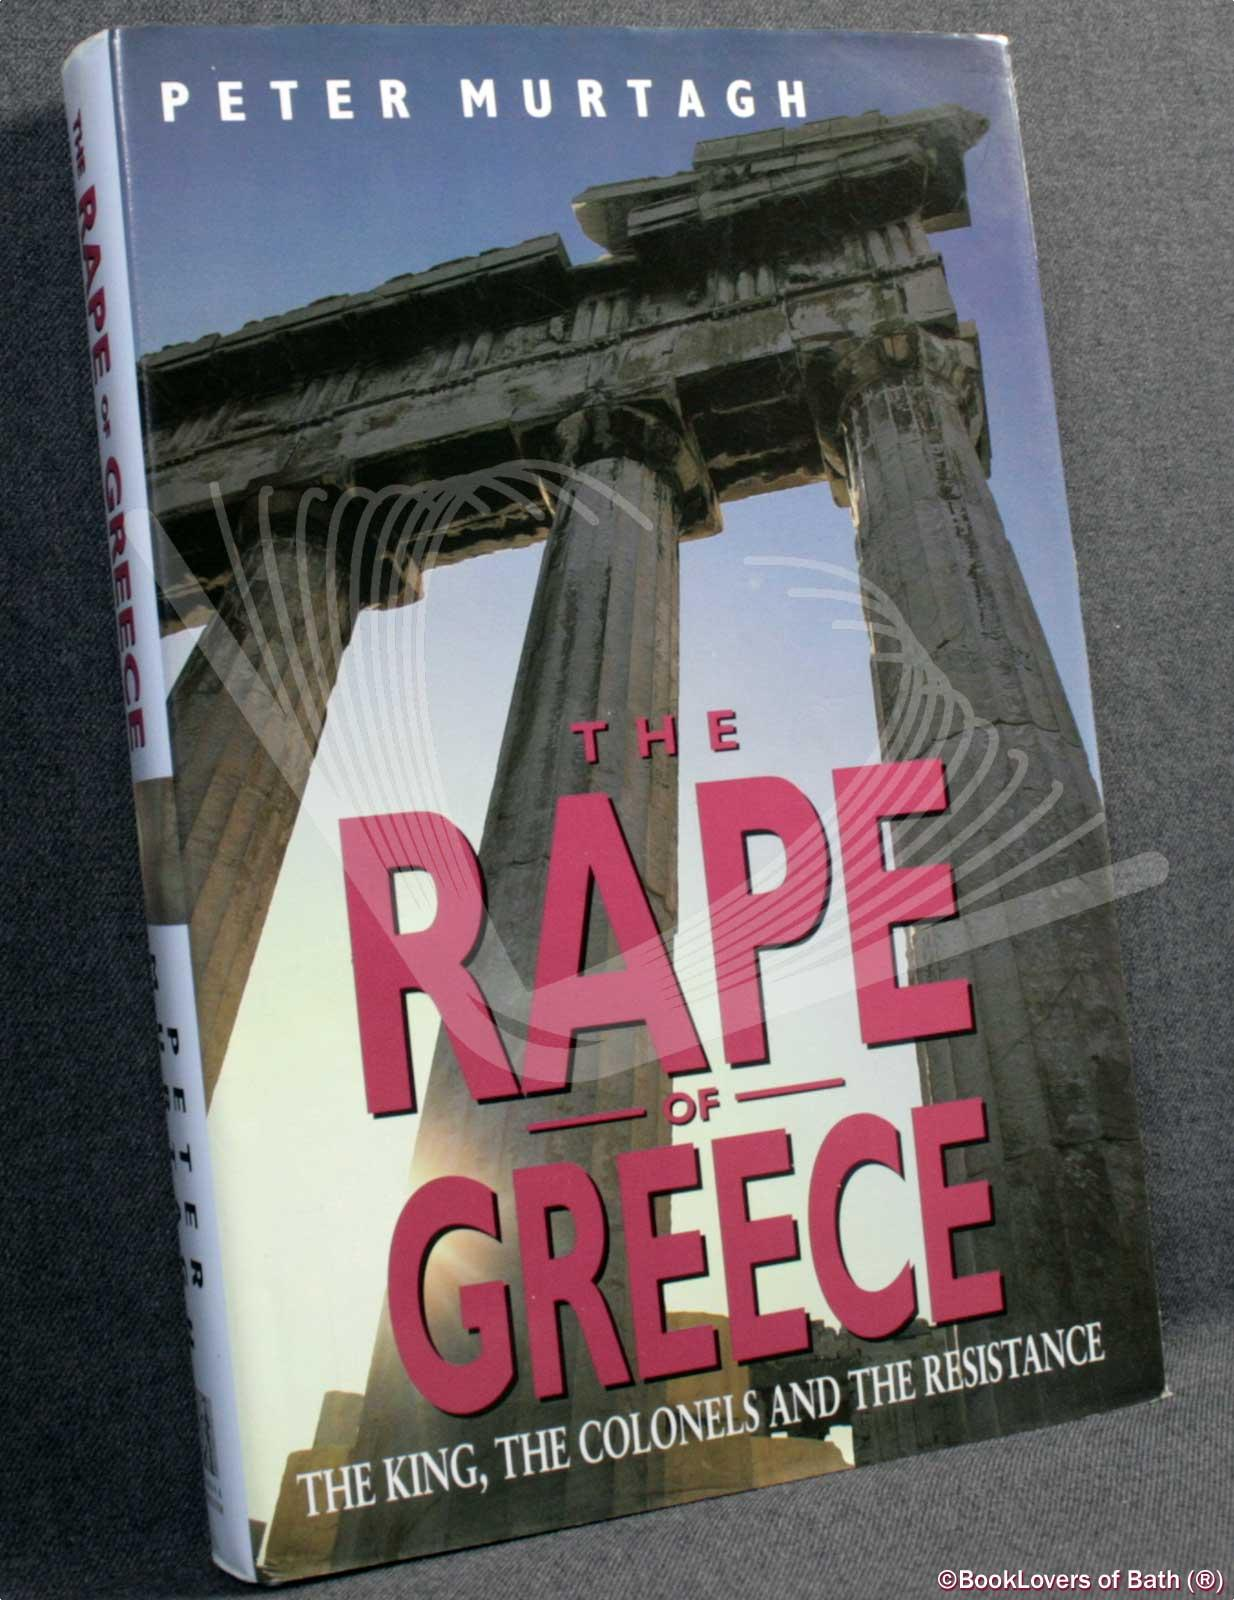 The Rape of Greece: The King, the Colonels and the Resistance - Peter Murtagh